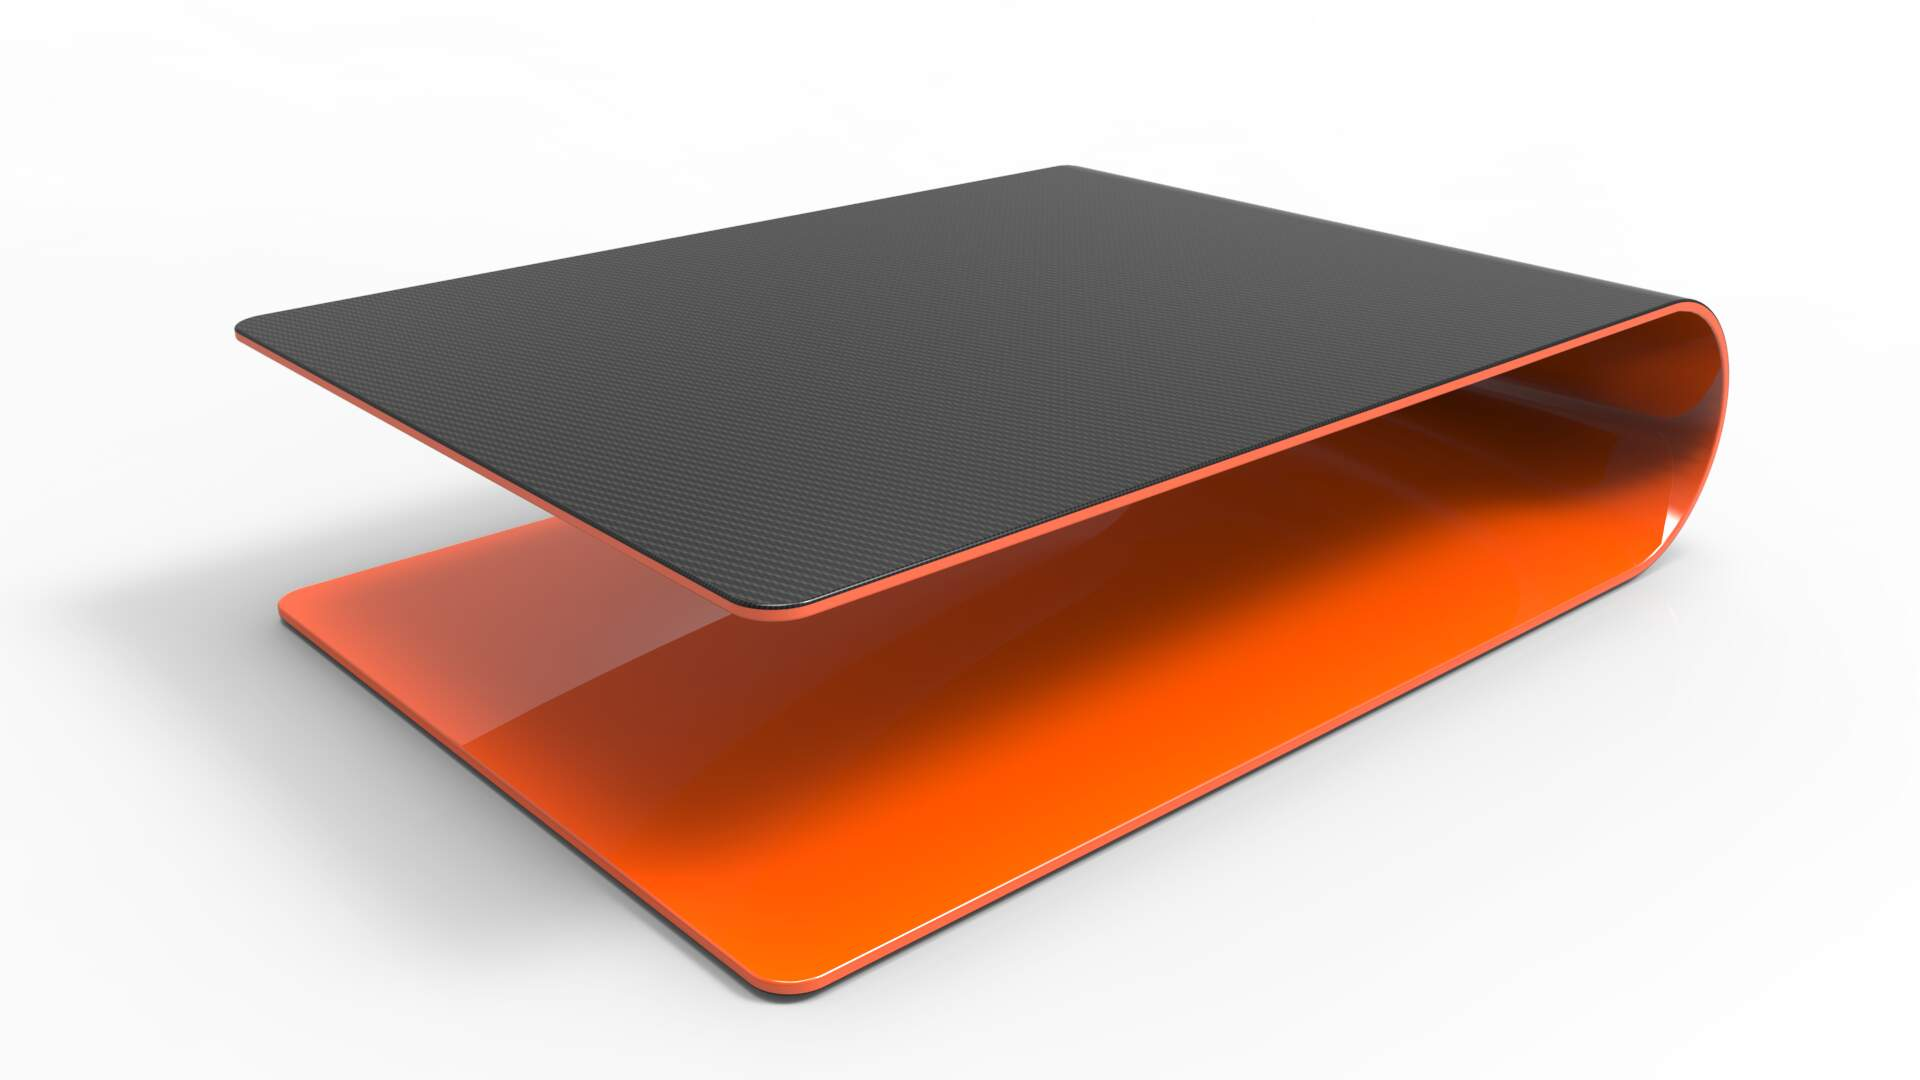 BOOMERANG. Low table or side table made of carbon fiber, Kevlar and structural foam. Glossy orange painted inside, transparent painted carbon fiber outside.